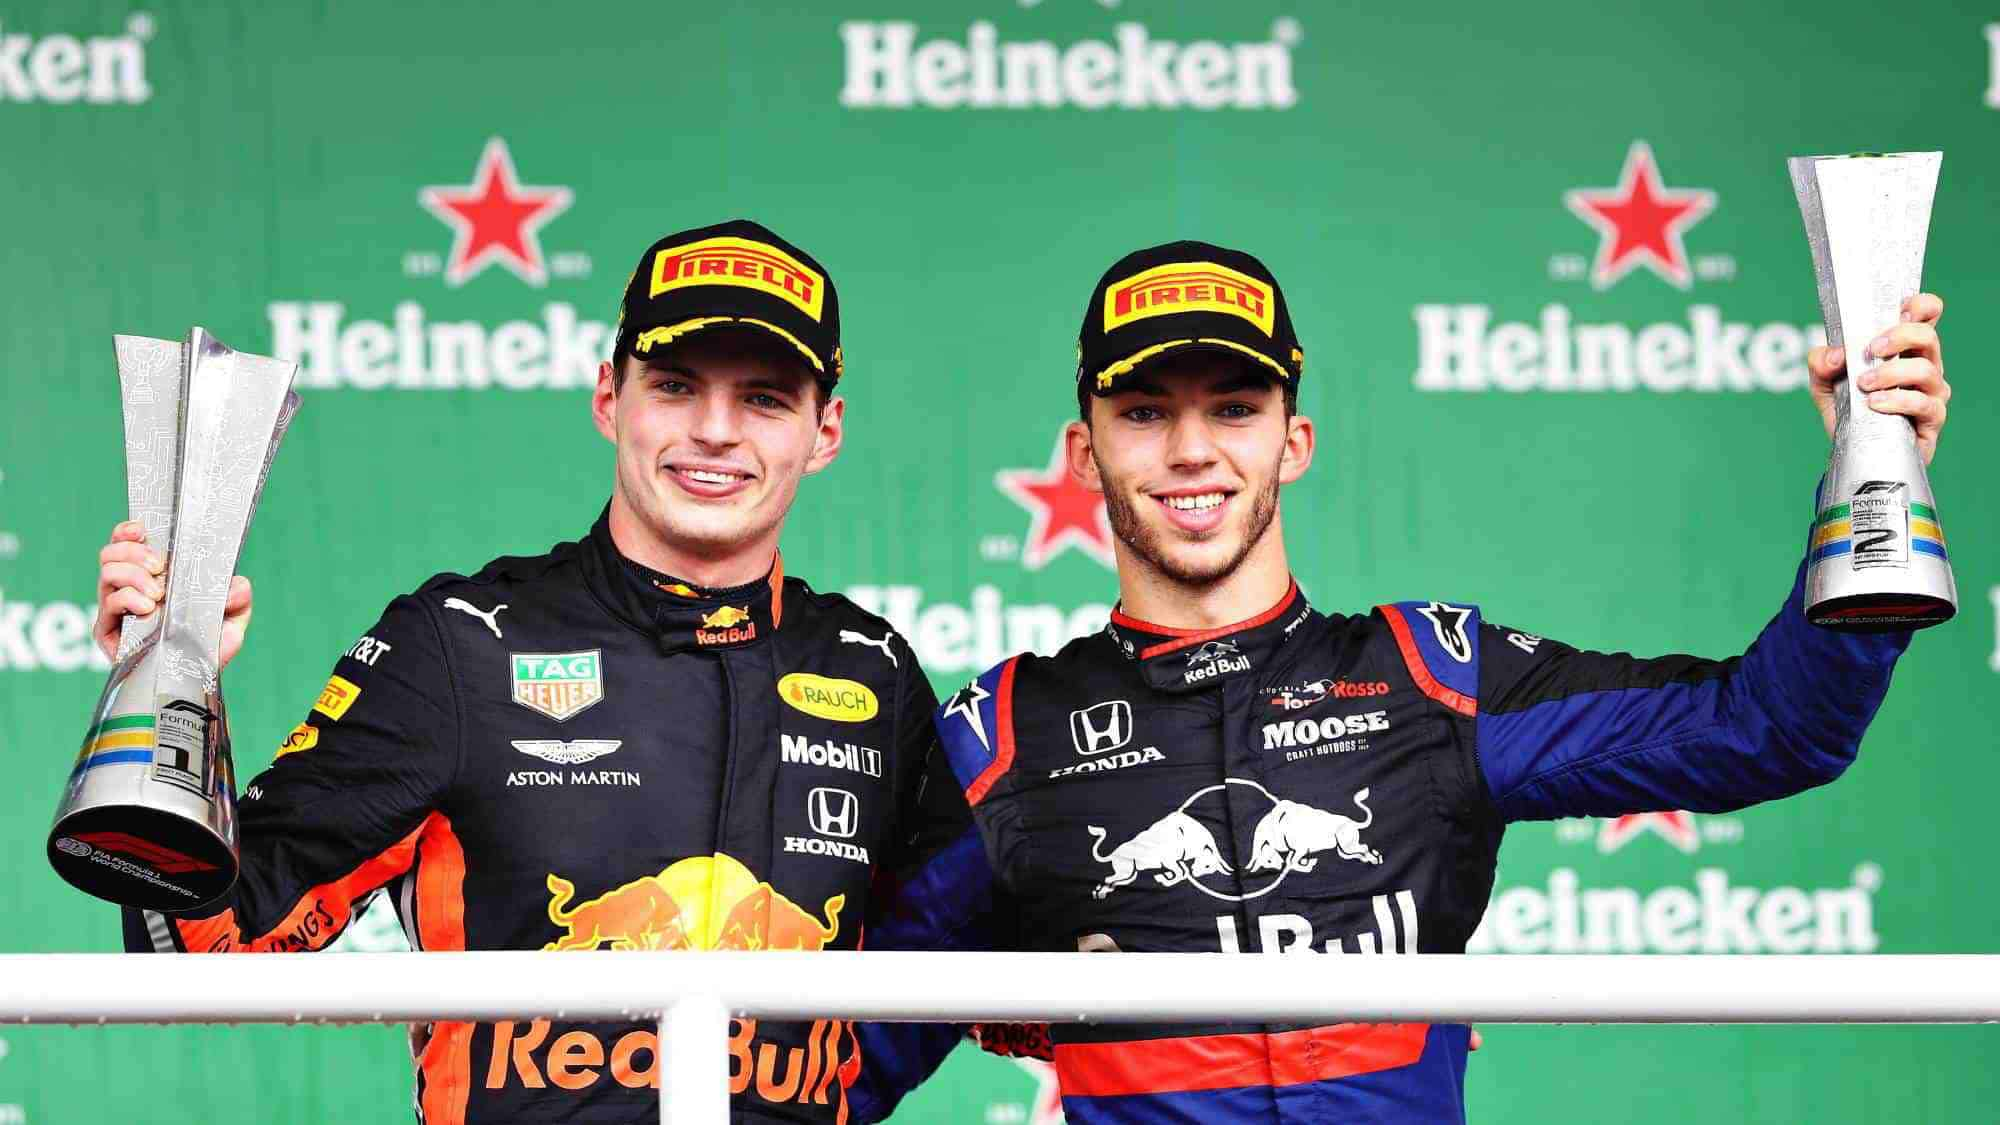 Verstappen Gasly Brazilian GP F1 2019 podium Photo Red Bull